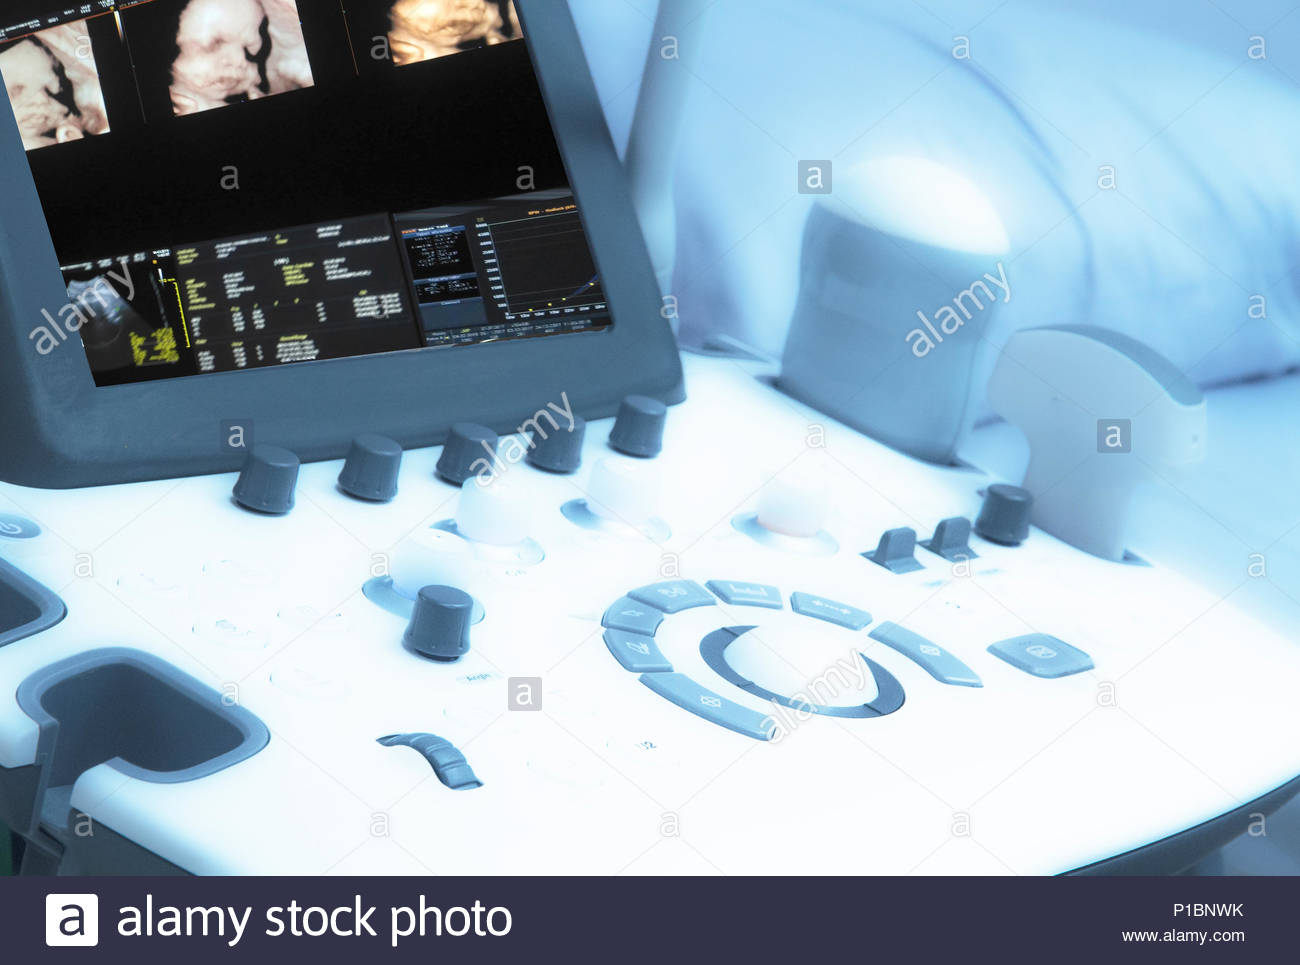 Drak and Blurry Medical ultrasound machine with 3D/4D image and linear probes in a hospital diagnostic room. Modern medical equipment, preventional me - Stock Image